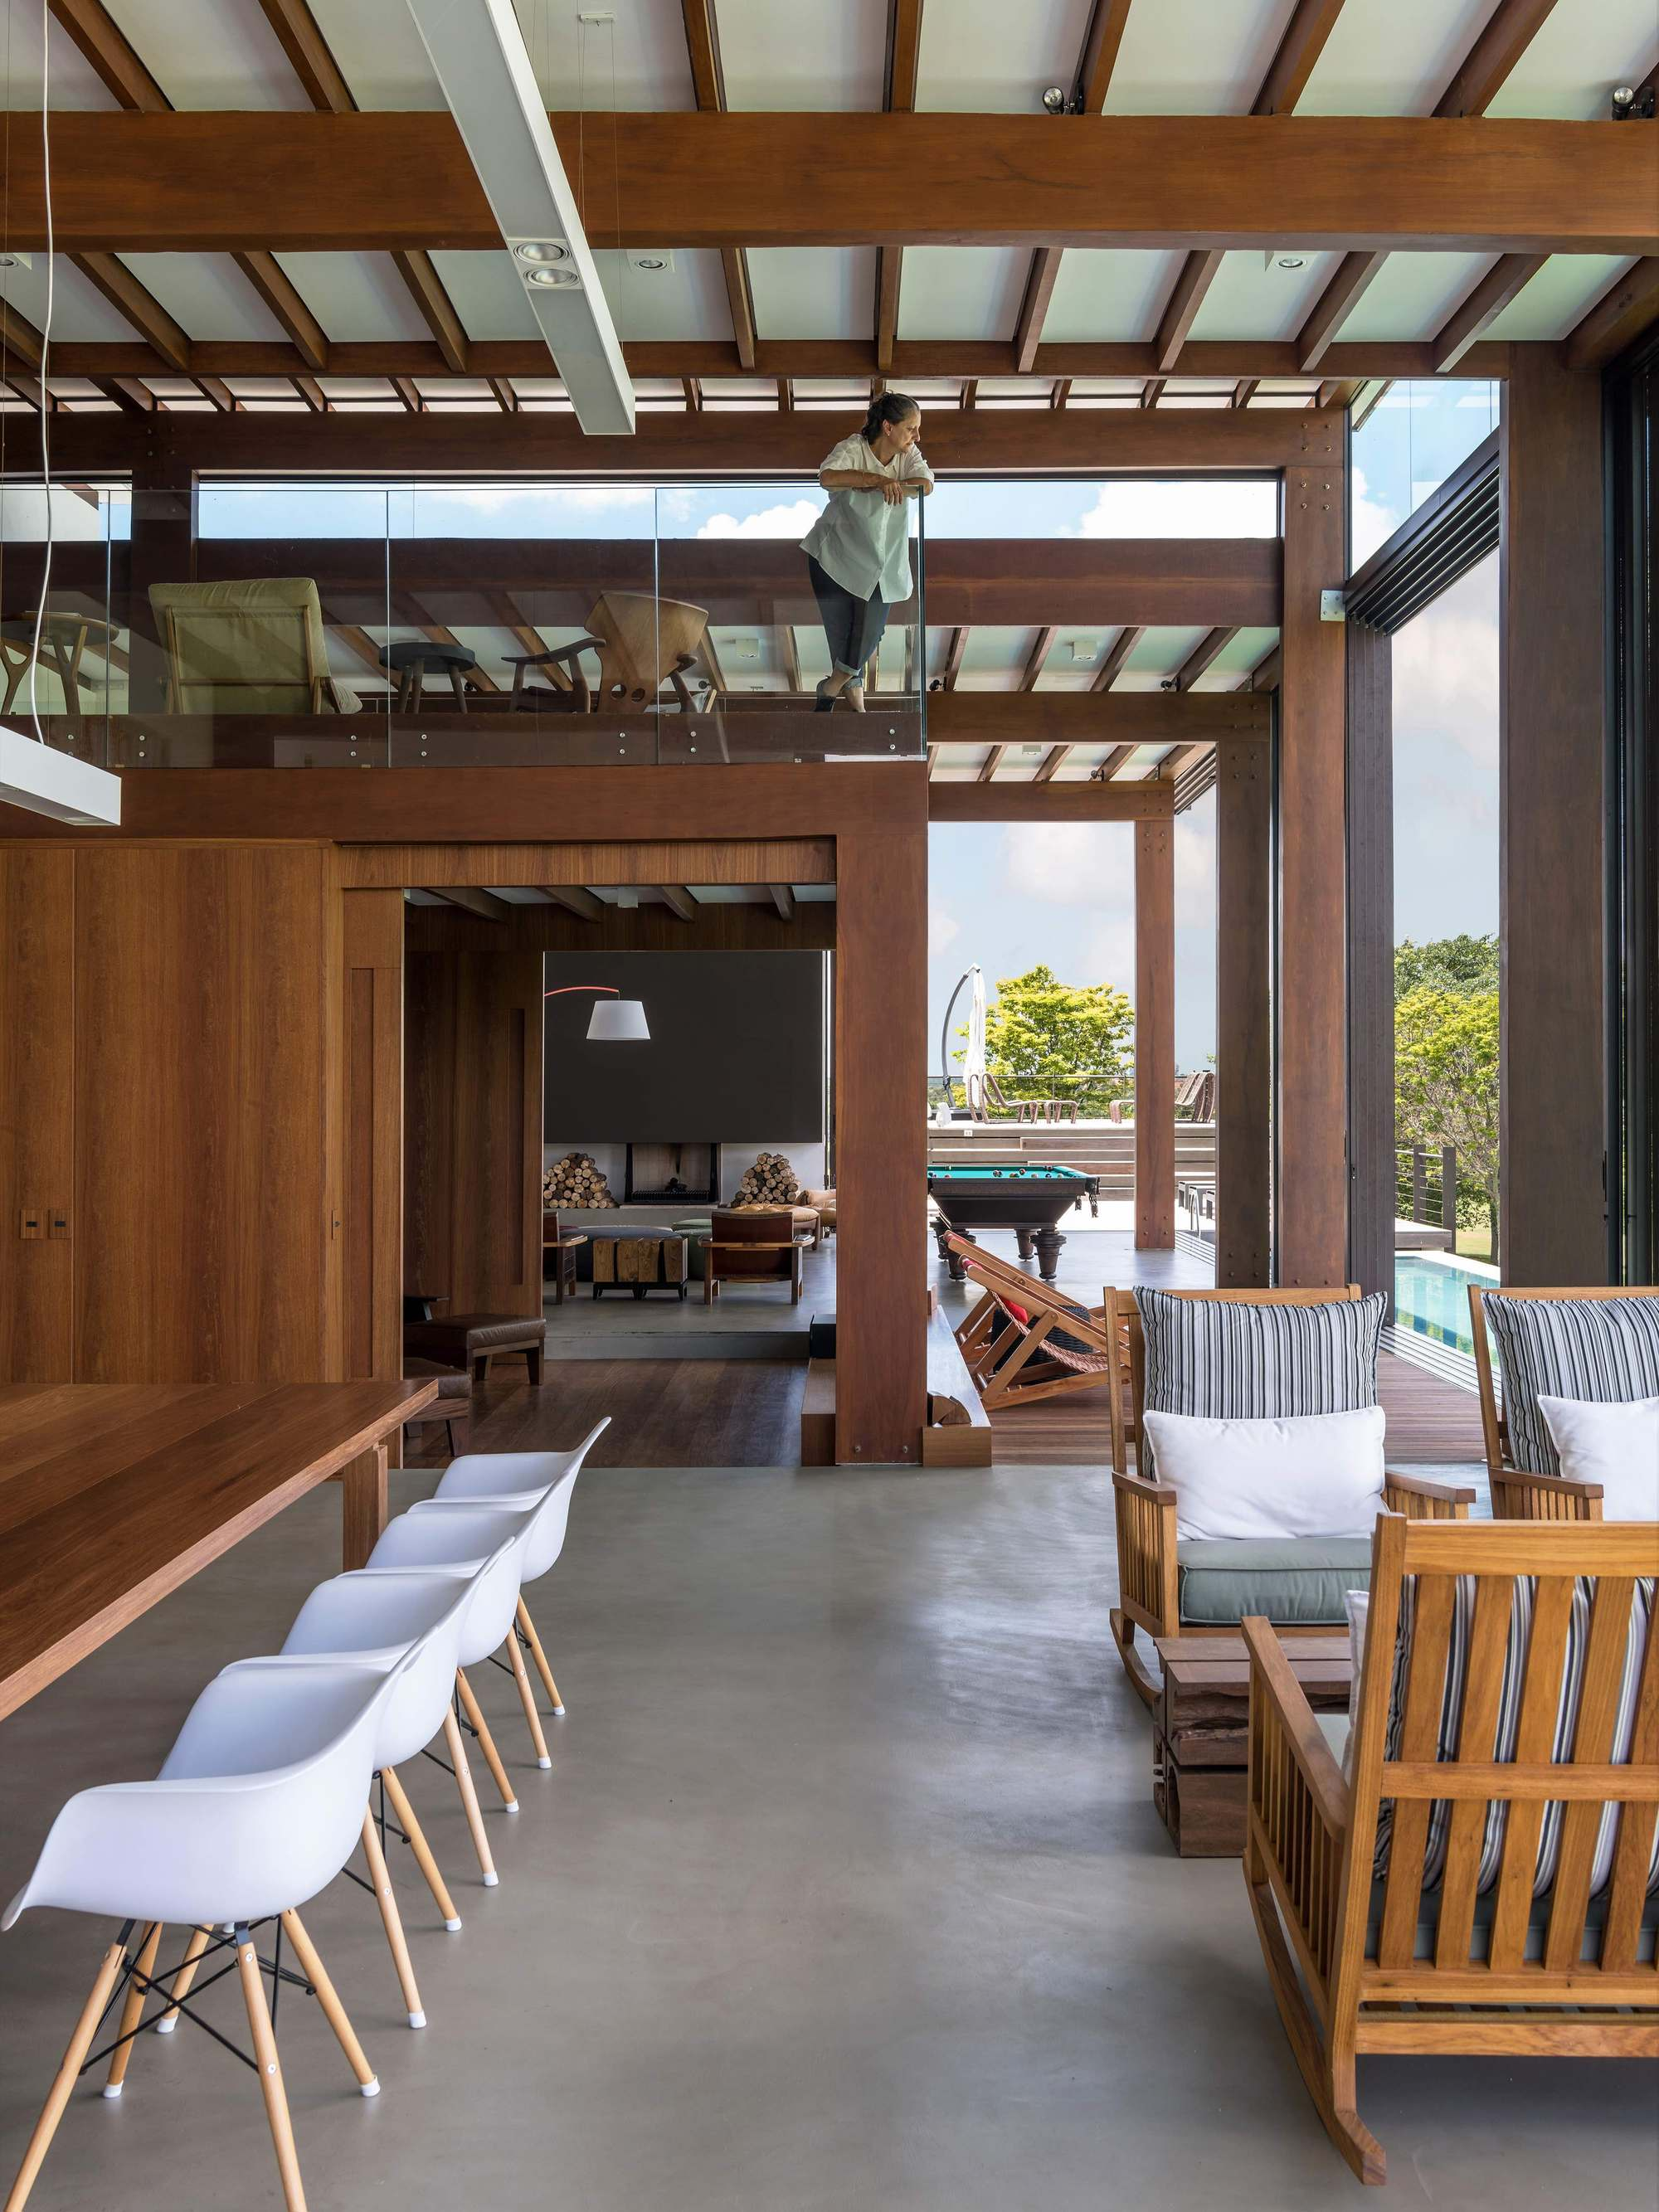 Gallery of house acp candida tabet arquitetura 24 - Residence secondaire candida tabet architecture ...